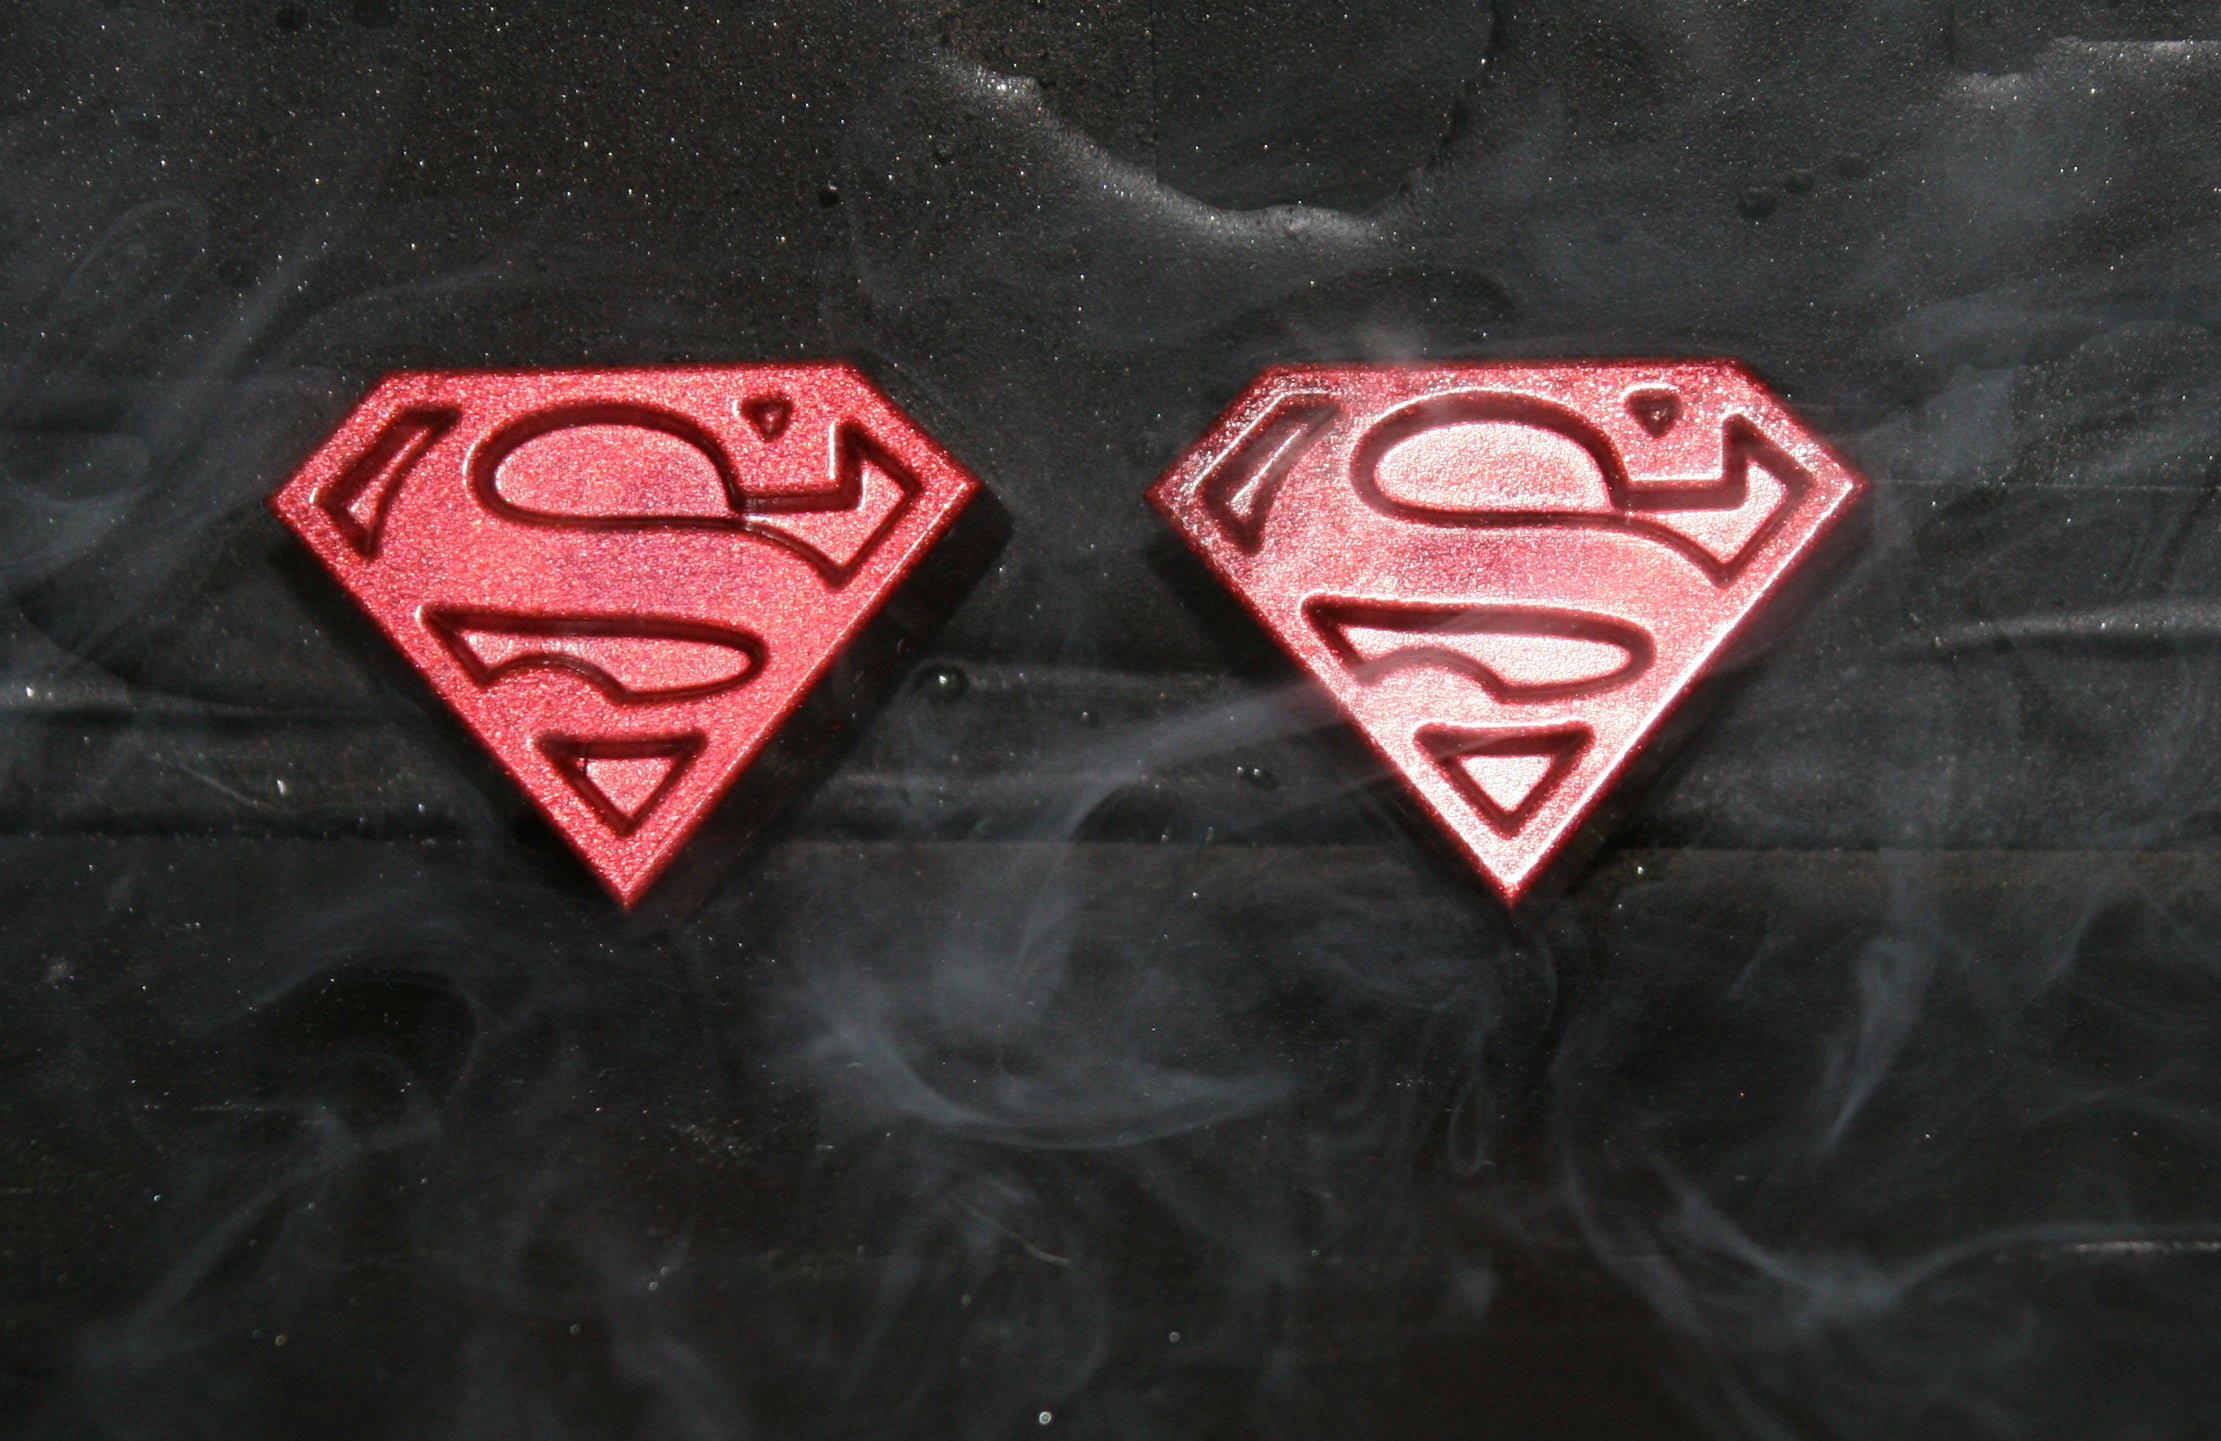 Hand Made Superman Symbol Glow In The Dark Resin Toy Figures